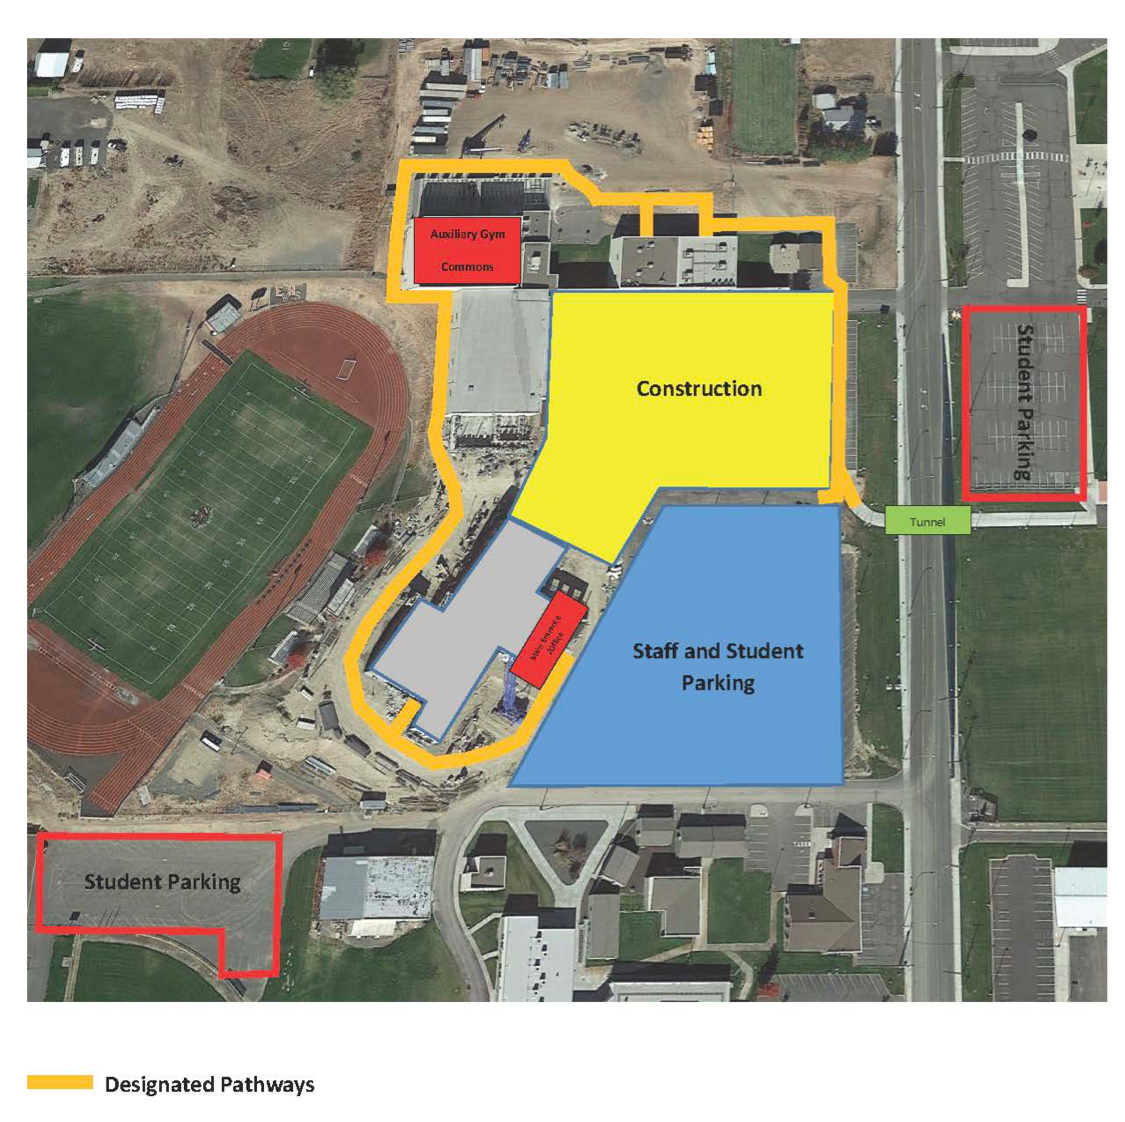 Aerial view showing construction zone and designated pathways for students to safely go to classes.